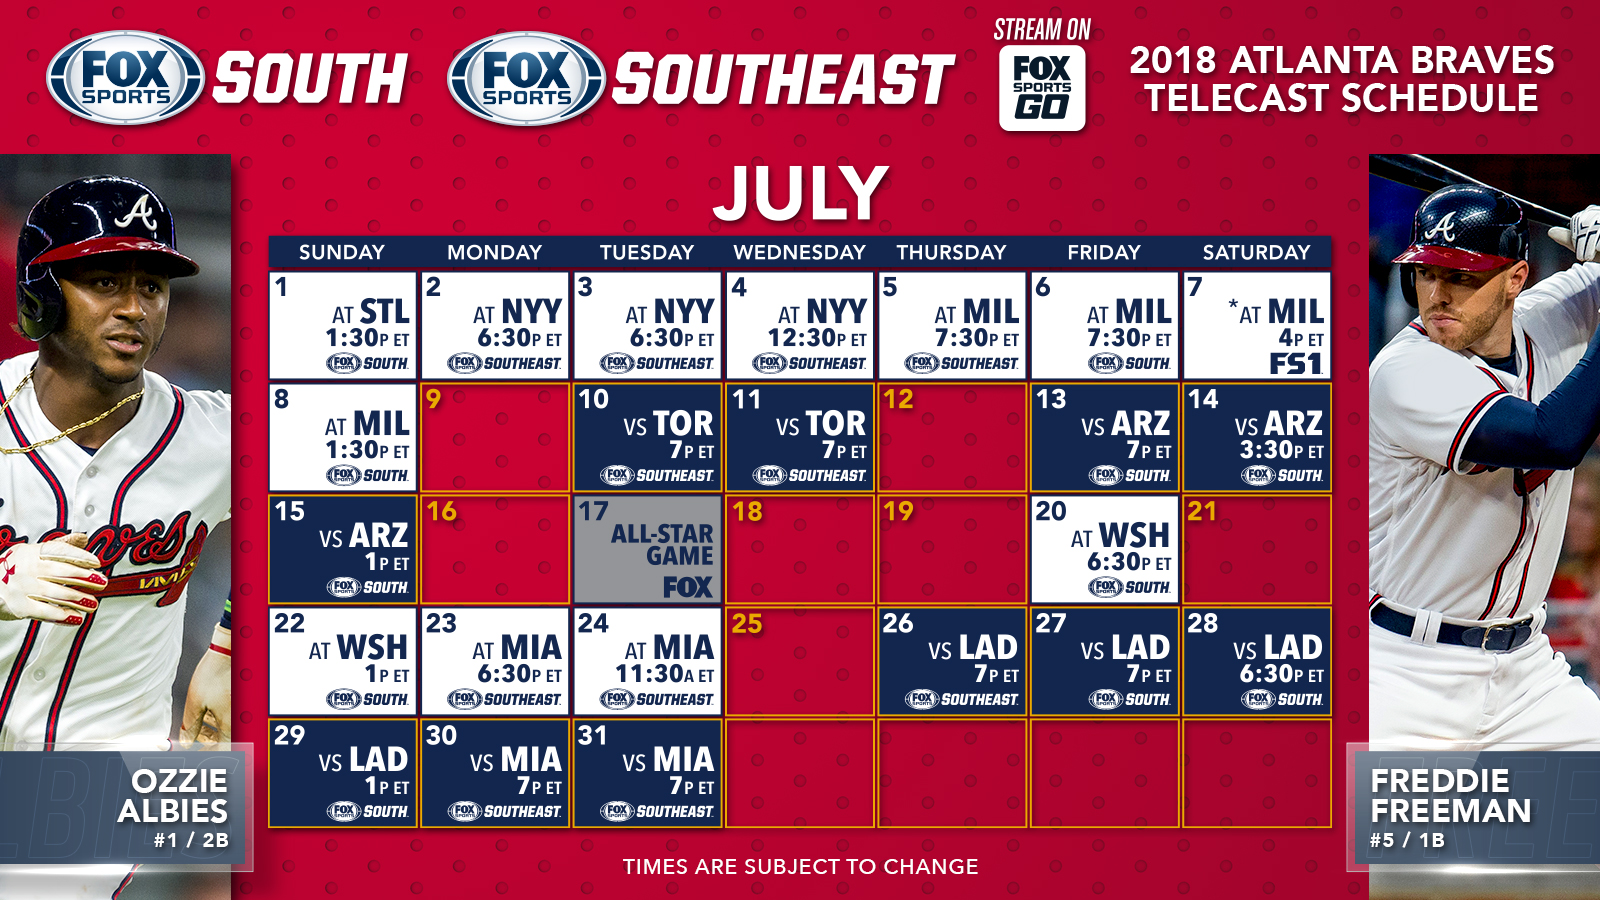 photo regarding Atlanta Braves Tv Schedule Printable called Atlanta Braves Television Agenda Illustrations and Styles